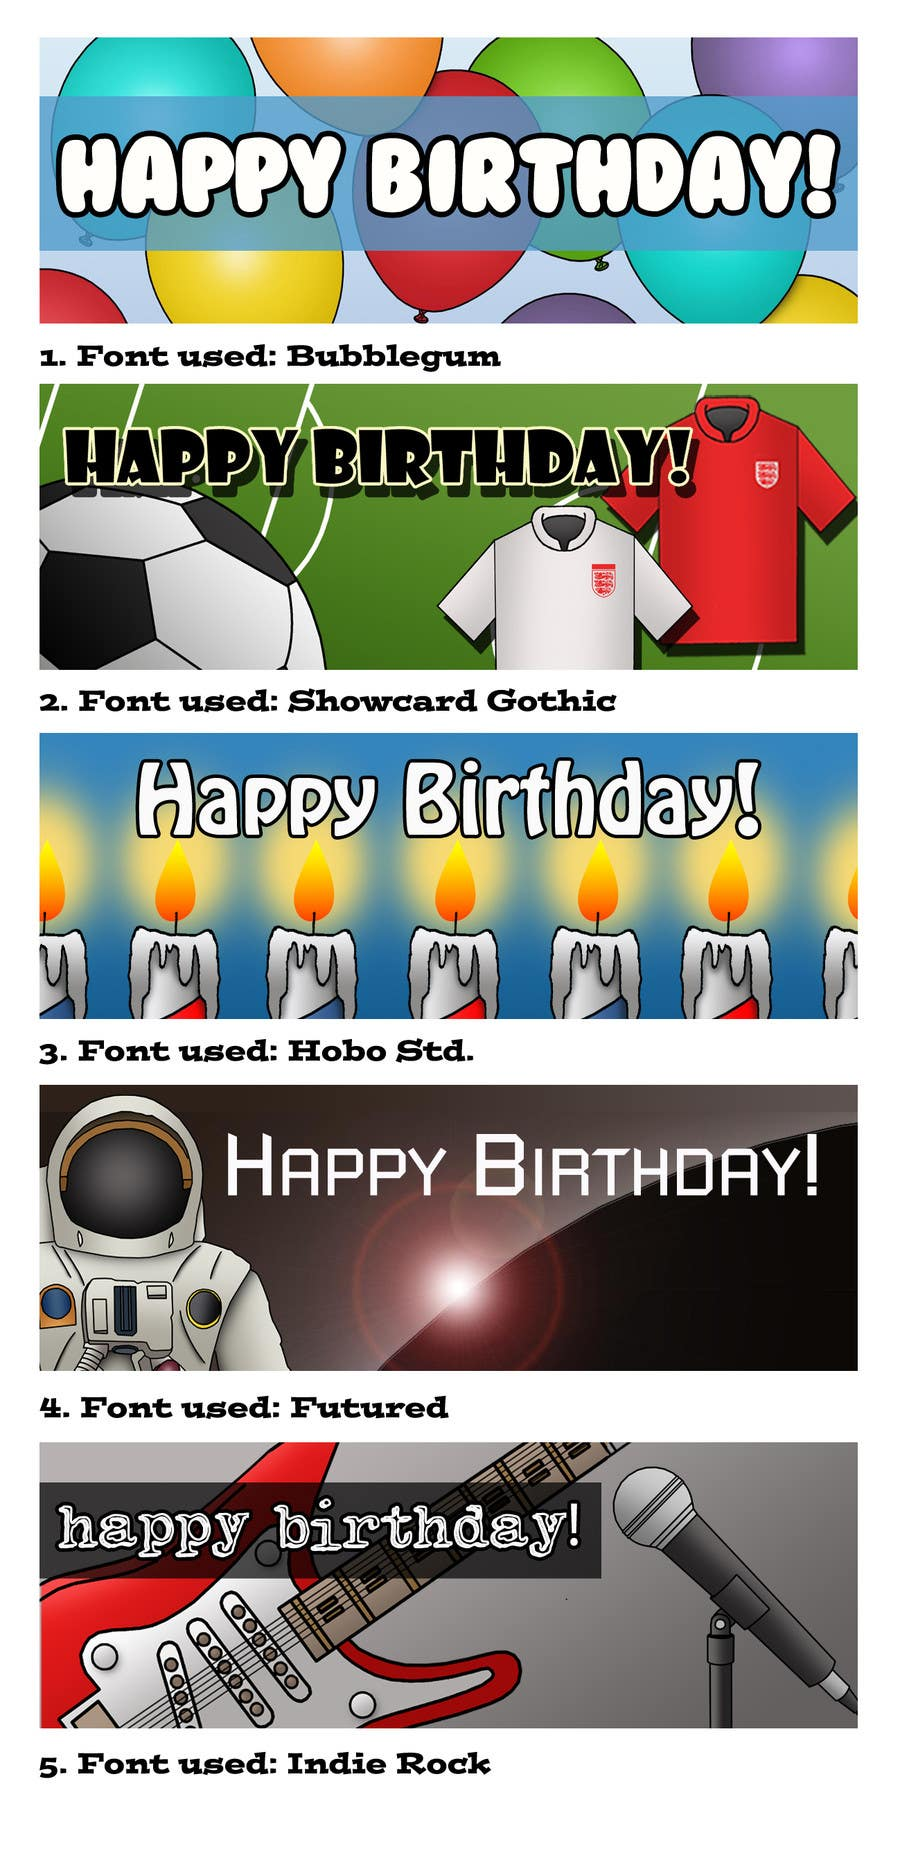 #3 for i need 5 designs for birthday banners by AdamSteve1984